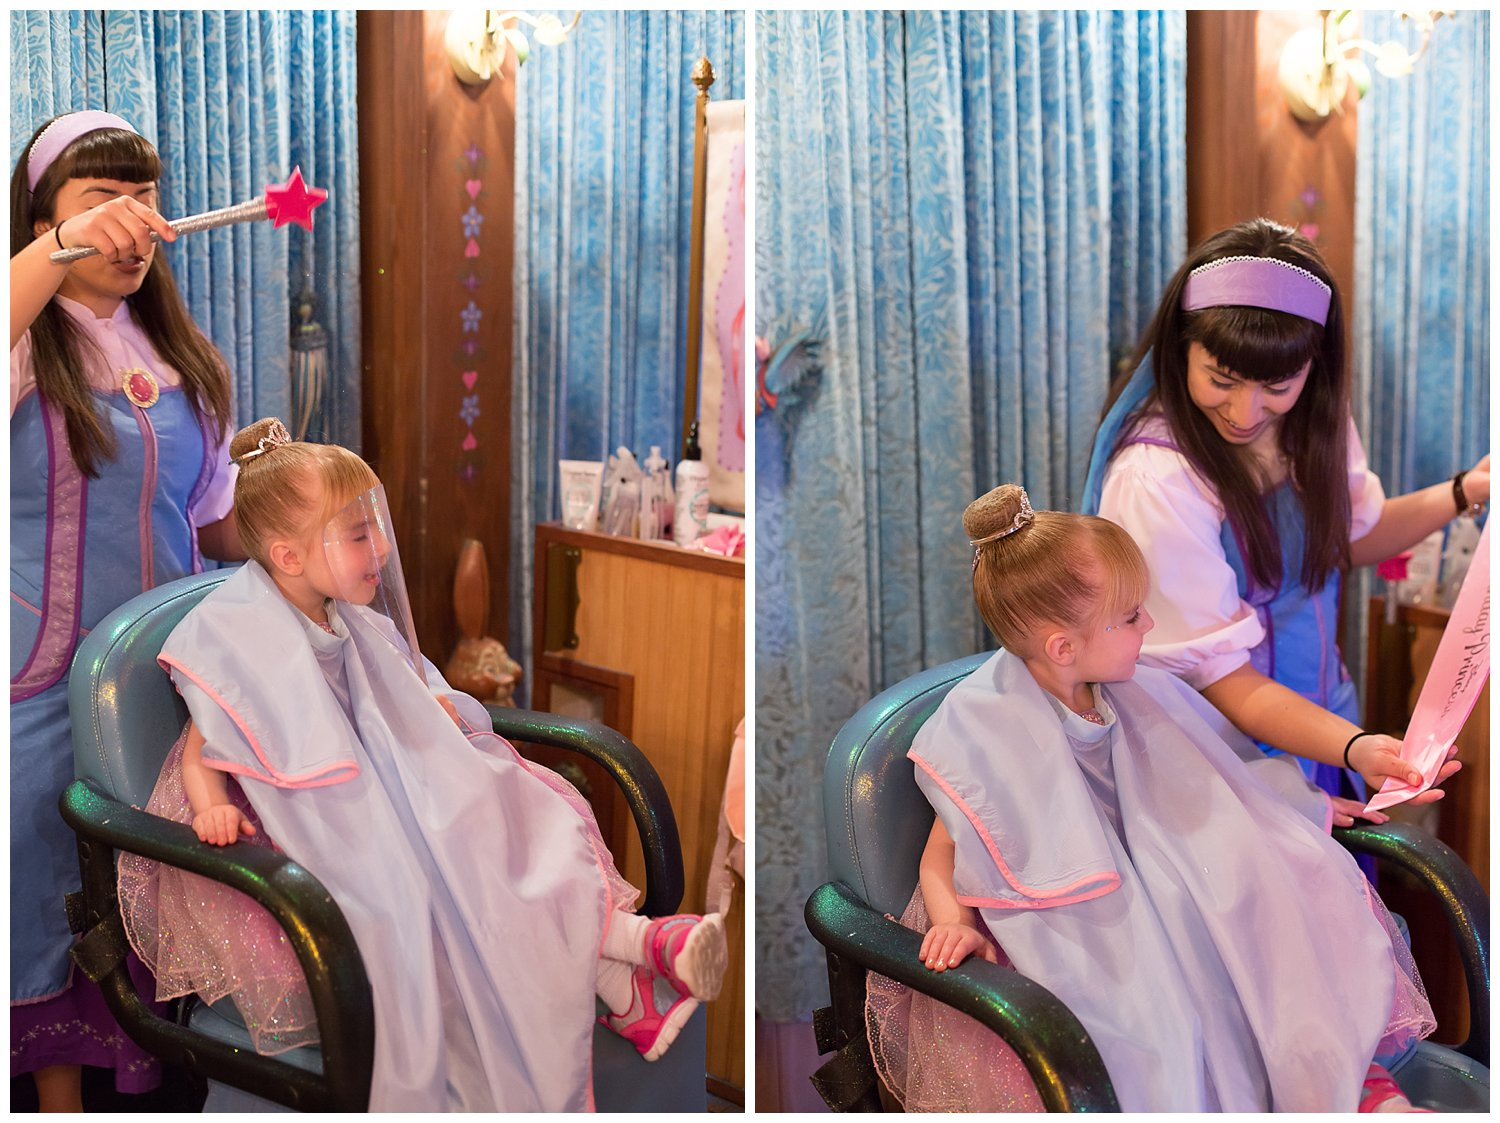 """Esme's big birthday gift was going to the Bippity Salon to get a full princess makeover! She chose a princess Minnie dress and went for the cinderella style hairstyle! I literally cried watching her makeover LOL she was having so much fun and chatting it up with her """"fairy God Mother in training"""" like a little adult!"""